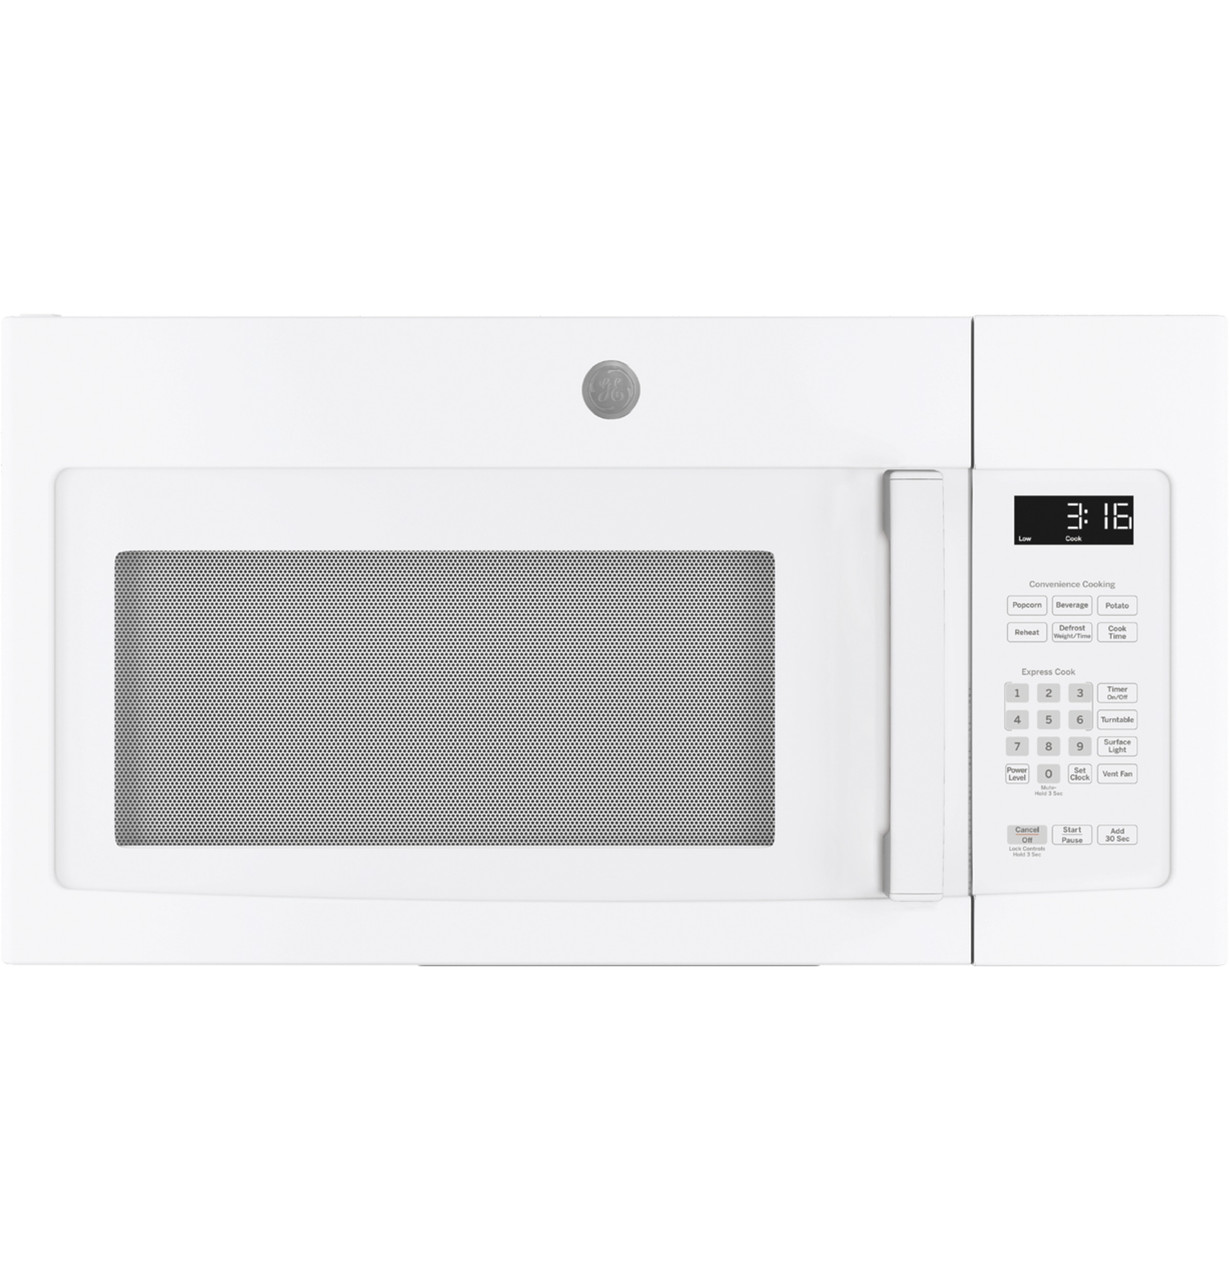 ge 1 6 cu ft over the range microwave oven with recirculating venting jnm3163djww